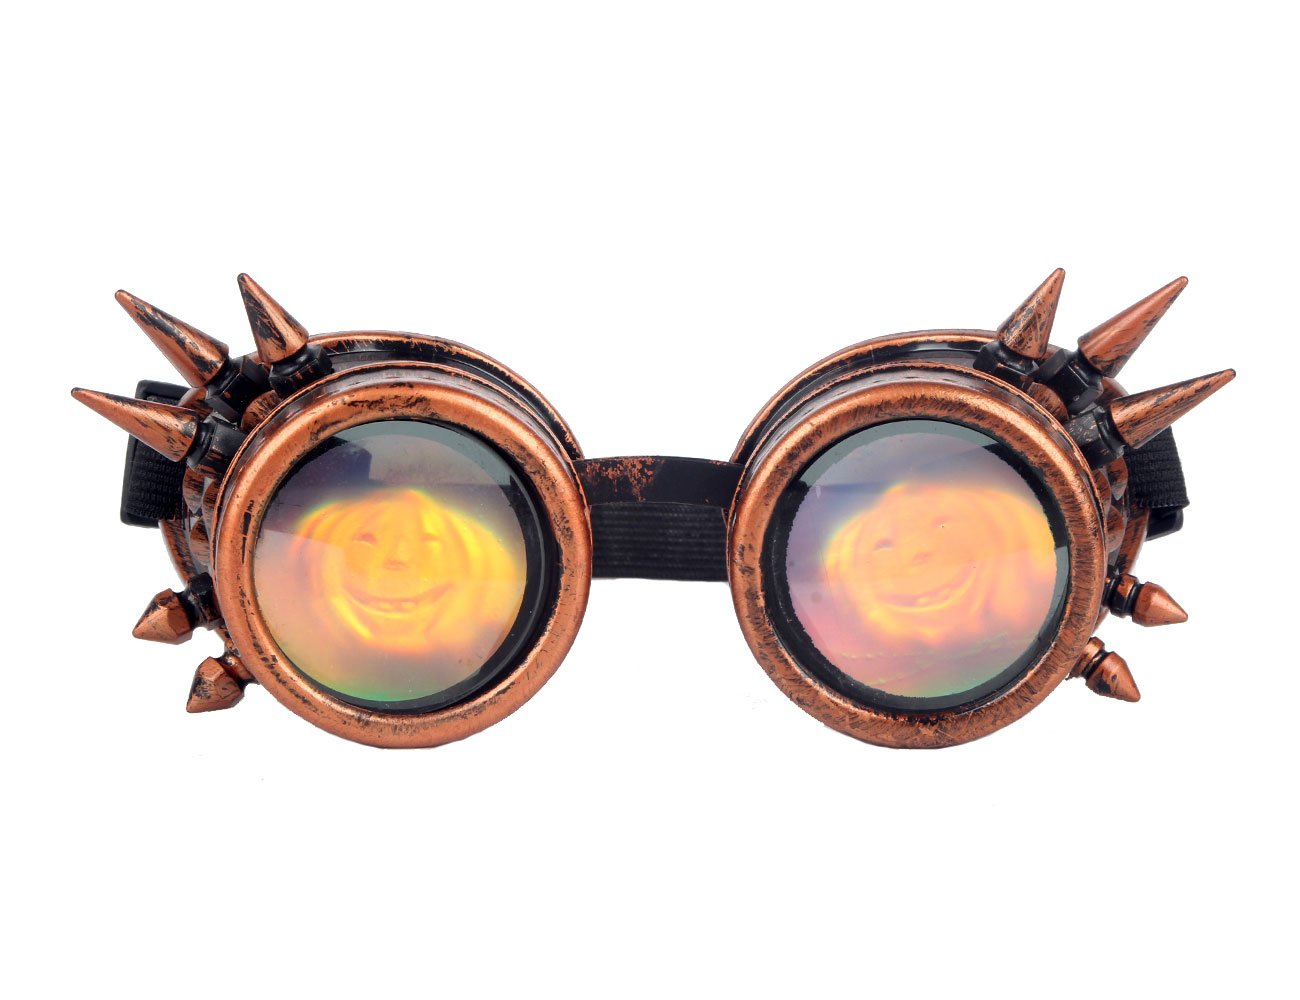 Kaleidoscope Rave Rainbow Crystal Lenses Steampunk Goggles Spike Halloween (One Size-Adjustable head band, Red Copper-cushaw Lens)